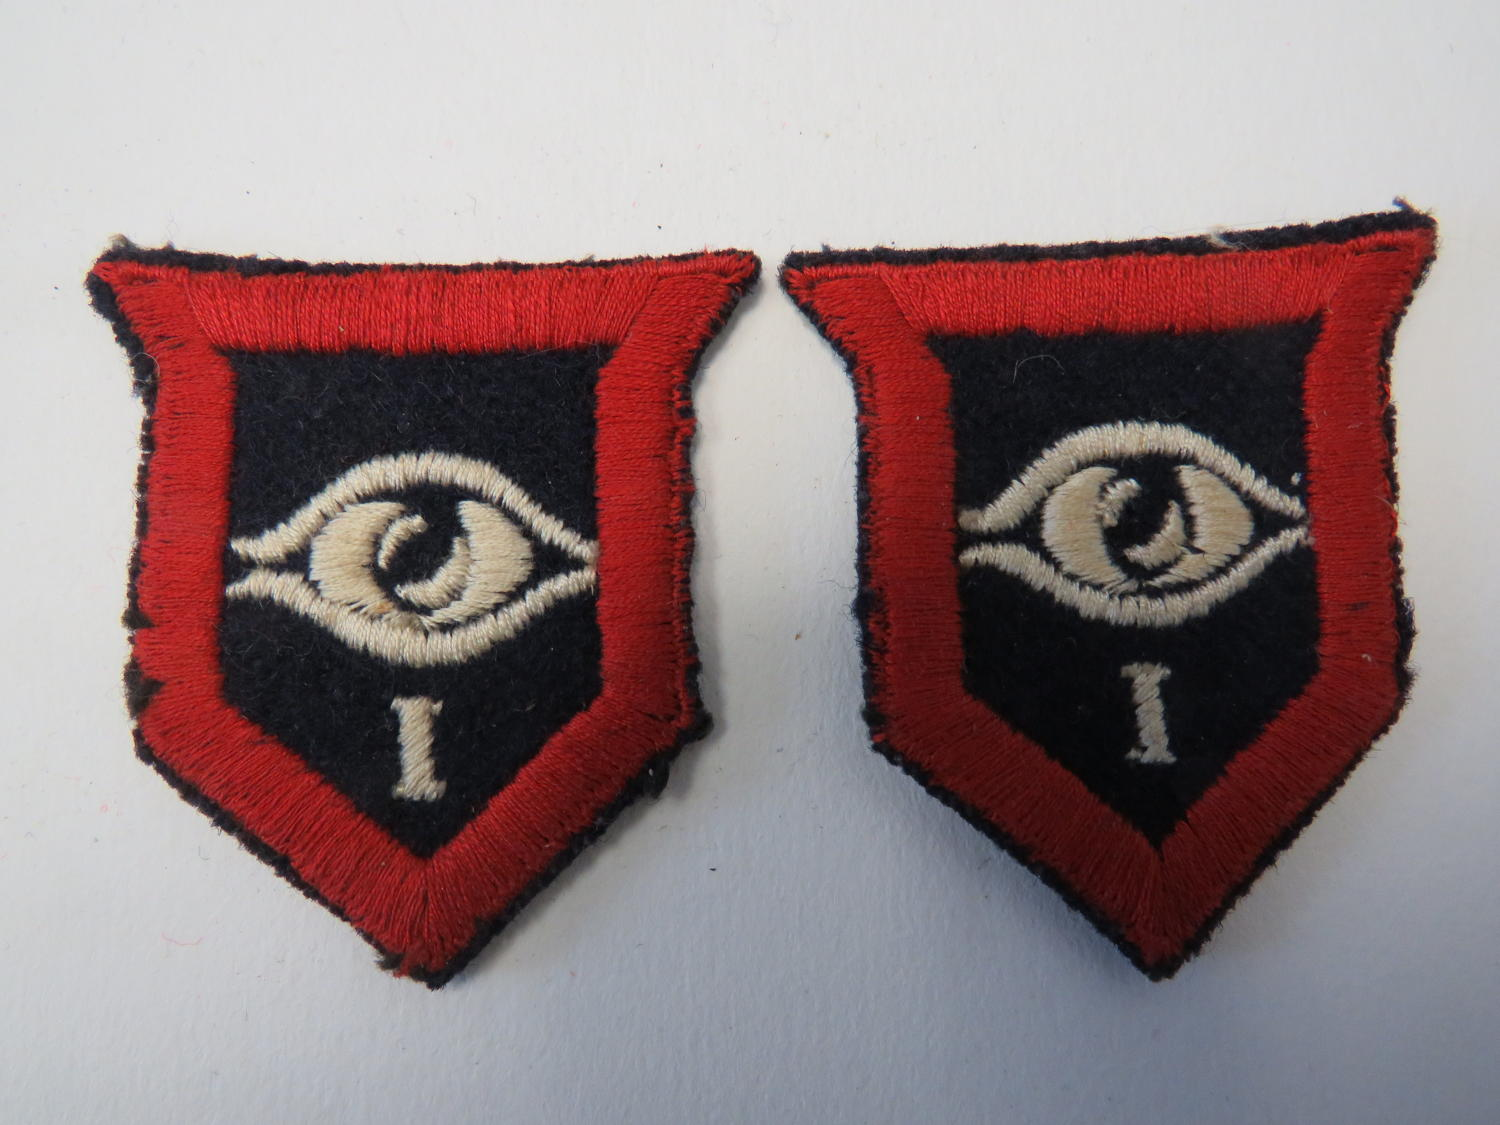 Pair of 1st Guards Armoured Division Formation Badges